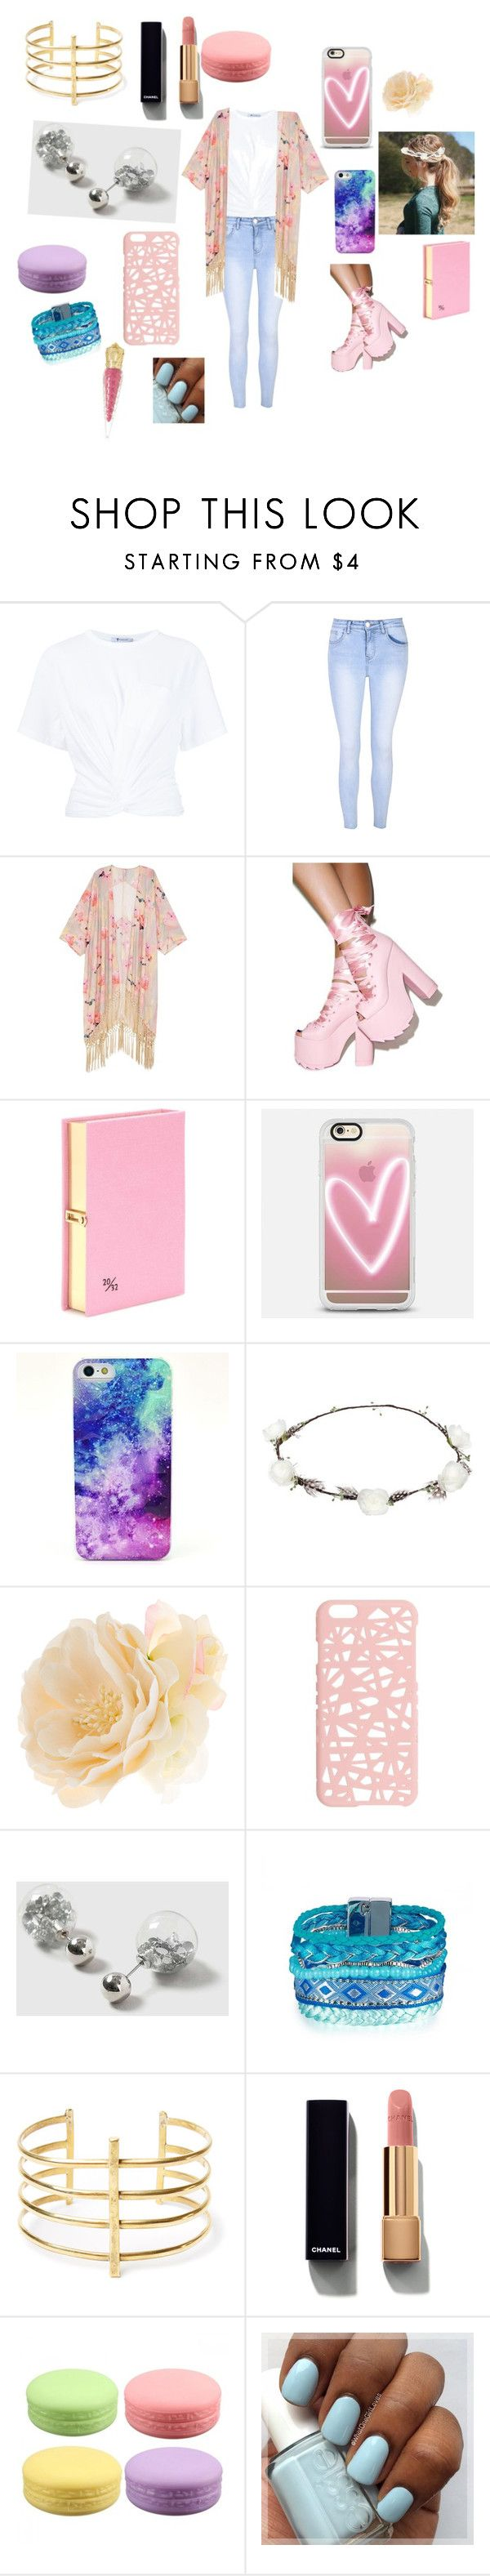 """Весенний стиль"" by simonyulya ❤ liked on Polyvore featuring beauty, T By Alexander Wang, Glamorous, Melissa McCarthy Seven7, Y.R.U., Olympia Le-Tan, Casetify, Lipsy, Accessorize and Miss Selfridge"